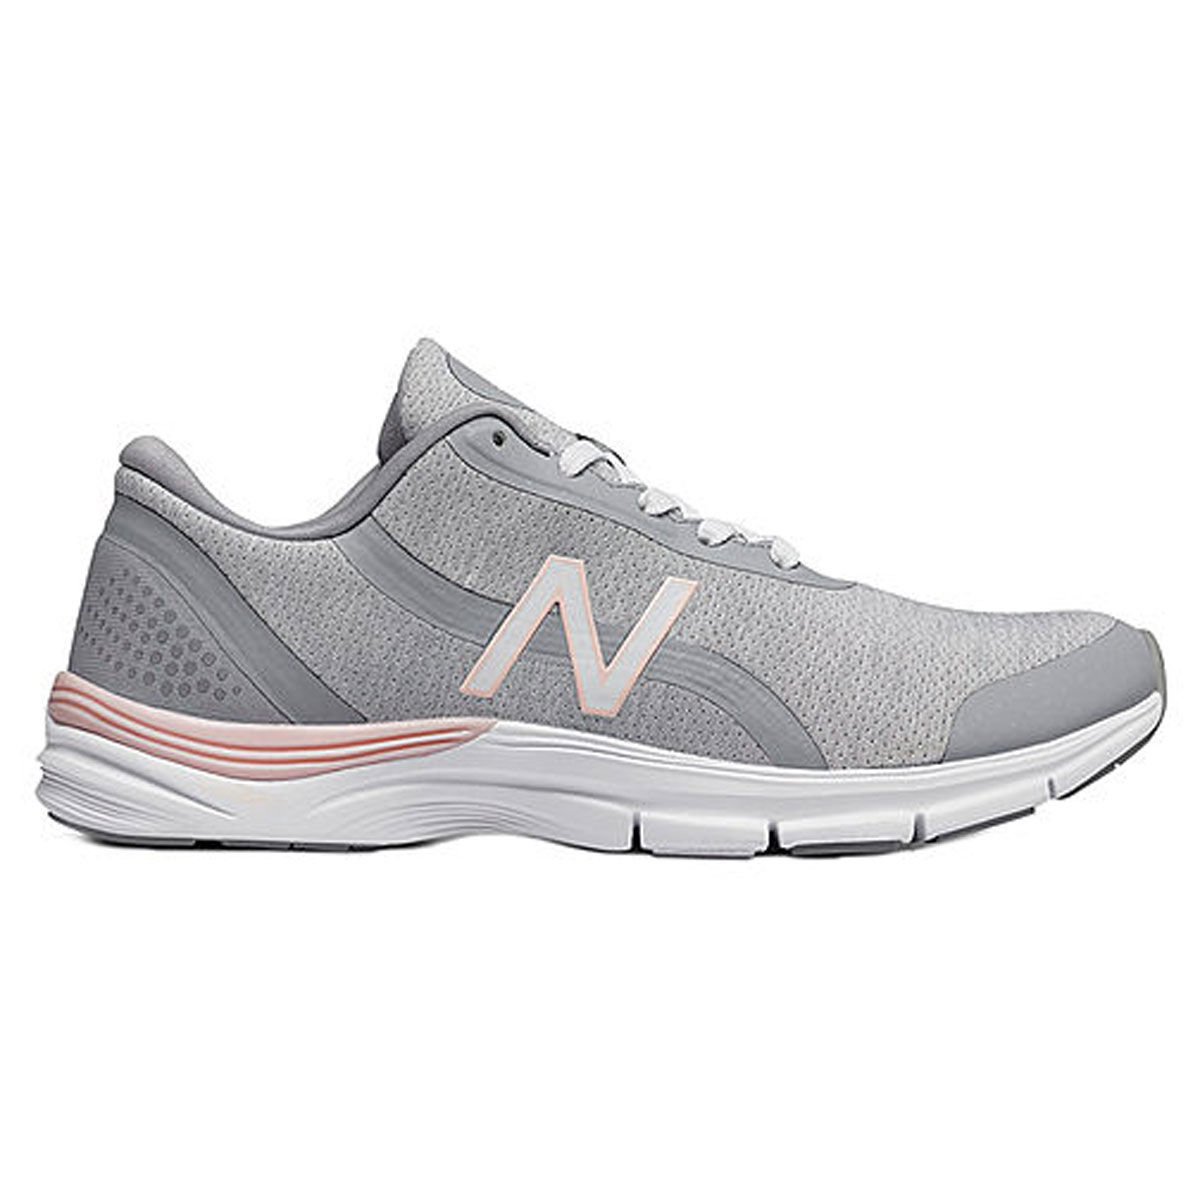 New Balance 711 V3 Womens Training Shoe